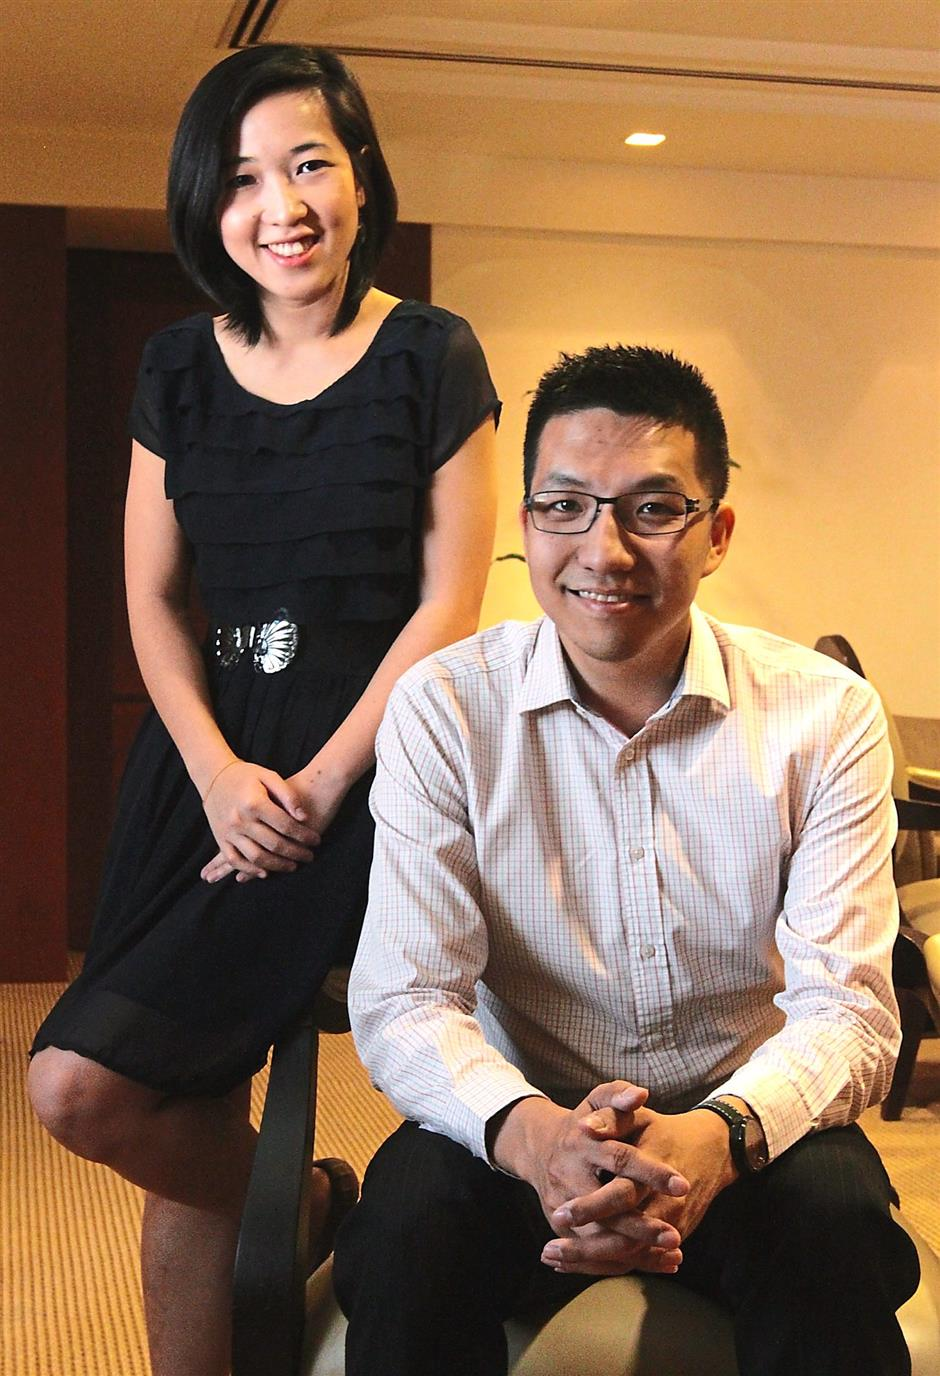 Help's at hand: Former colleagues Loh (left) and Lim developed EduAdvisor to help students.